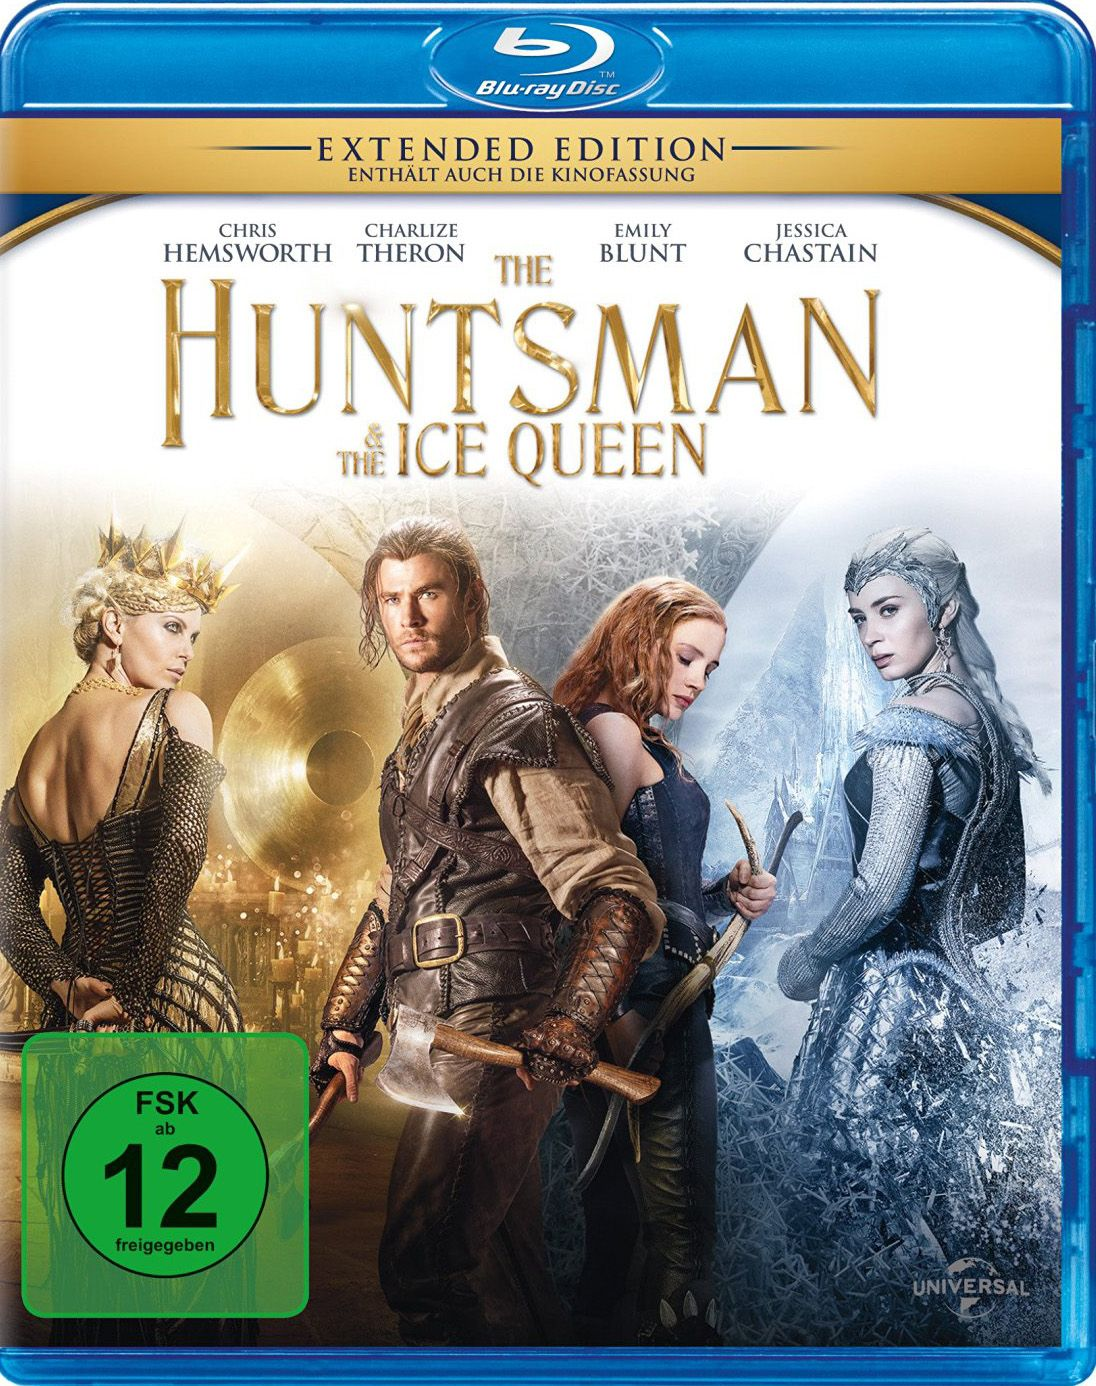 Huntsman & the Ice Queen, The (Kinofassung & Extended Version) (BLURAY)